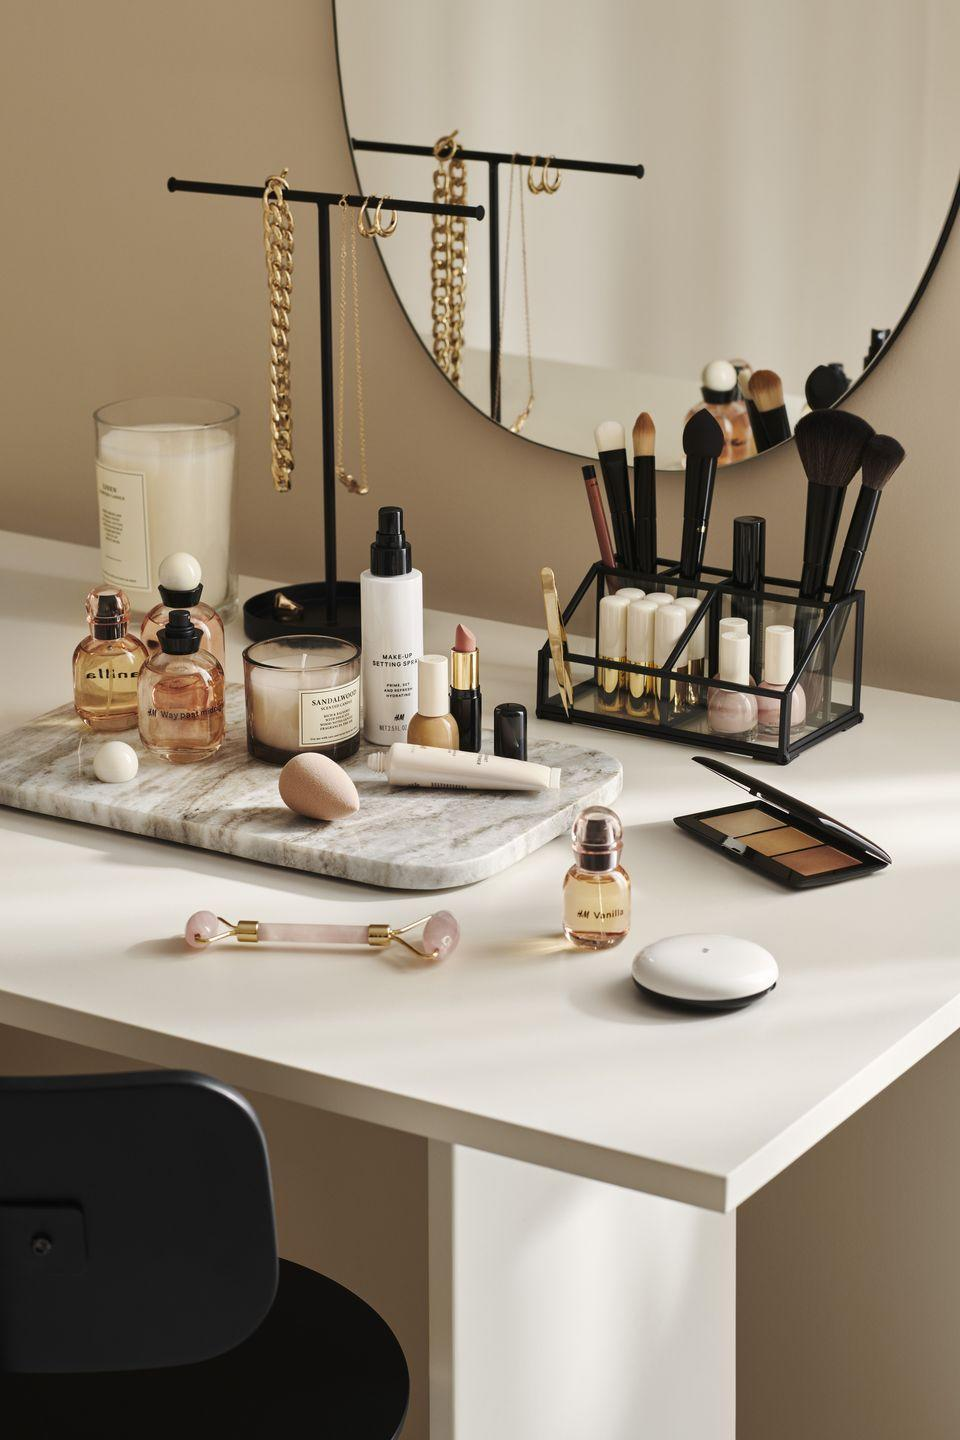 """<p>Keep your dressing table in order with H&M Home's must-have selection of trays, trinkets and stands. </p><p><a class=""""link rapid-noclick-resp"""" href=""""https://go.redirectingat.com?id=127X1599956&url=https%3A%2F%2Fwww2.hm.com%2Fen_gb%2Fhome.html&sref=https%3A%2F%2Fwww.housebeautiful.com%2Fuk%2Flifestyle%2Fshopping%2Fg35116386%2Fhandm-home-spring%2F"""" rel=""""nofollow noopener"""" target=""""_blank"""" data-ylk=""""slk:SHOP H&M HOME"""">SHOP H&M HOME</a> </p><p><strong>Like this article? <a href=""""https://hearst.emsecure.net/optiext/cr.aspx?ID=DR9UY9ko5HvLAHeexA2ngSL3t49WvQXSjQZAAXe9gg0Rhtz8pxOWix3TXd_WRbE3fnbQEBkC%2BEWZDx"""" rel=""""nofollow noopener"""" target=""""_blank"""" data-ylk=""""slk:Sign up to our newsletter"""" class=""""link rapid-noclick-resp"""">Sign up to our newsletter</a> to get more articles like this delivered straight to your inbox.</strong></p><p><a class=""""link rapid-noclick-resp"""" href=""""https://hearst.emsecure.net/optiext/cr.aspx?ID=DR9UY9ko5HvLAHeexA2ngSL3t49WvQXSjQZAAXe9gg0Rhtz8pxOWix3TXd_WRbE3fnbQEBkC%2BEWZDx"""" rel=""""nofollow noopener"""" target=""""_blank"""" data-ylk=""""slk:SIGN UP"""">SIGN UP</a></p><p>In need of some positivity or not able to make it to the shops? <a href=""""https://go.redirectingat.com?id=127X1599956&url=https%3A%2F%2Fwww.hearstmagazines.co.uk%2Fhb%2Fhouse-beautiful-magazine-subscription-website&sref=https%3A%2F%2Fwww.housebeautiful.com%2Fuk%2Flifestyle%2Fshopping%2Fg35116386%2Fhandm-home-spring%2F"""" rel=""""nofollow noopener"""" target=""""_blank"""" data-ylk=""""slk:Subscribe to House Beautiful magazine today"""" class=""""link rapid-noclick-resp"""">Subscribe to House Beautiful magazine today</a> and get each issue delivered directly to your door.</p>"""